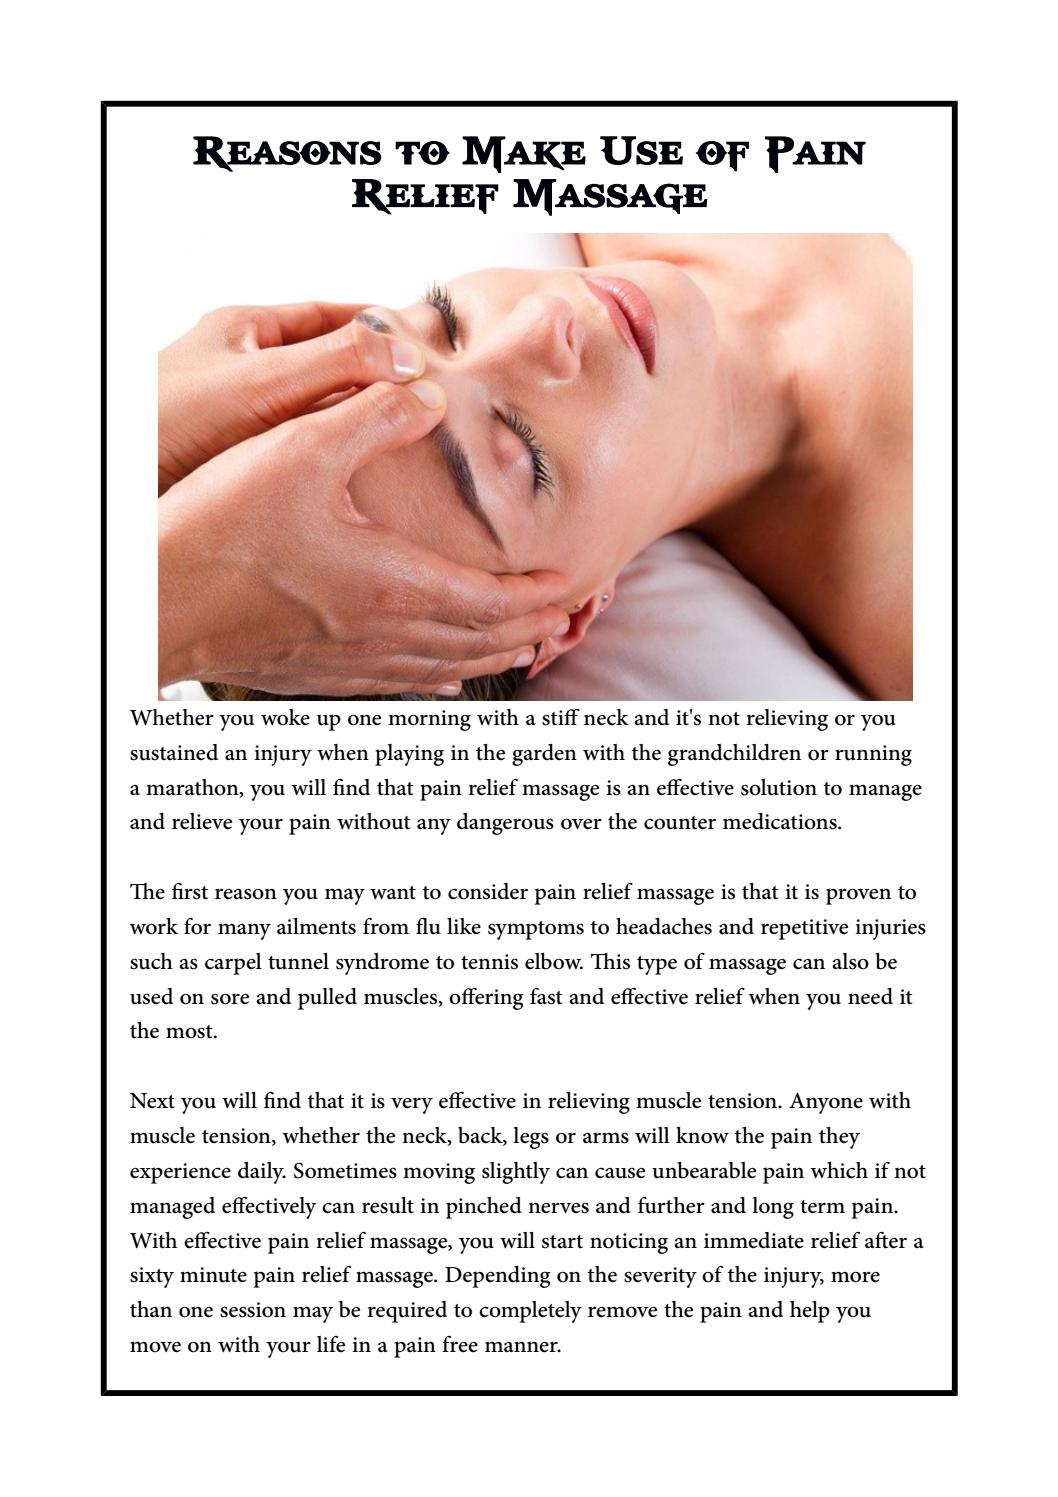 Reasons to Make Use of Pain Relief Massage by Kinetic Massage ...